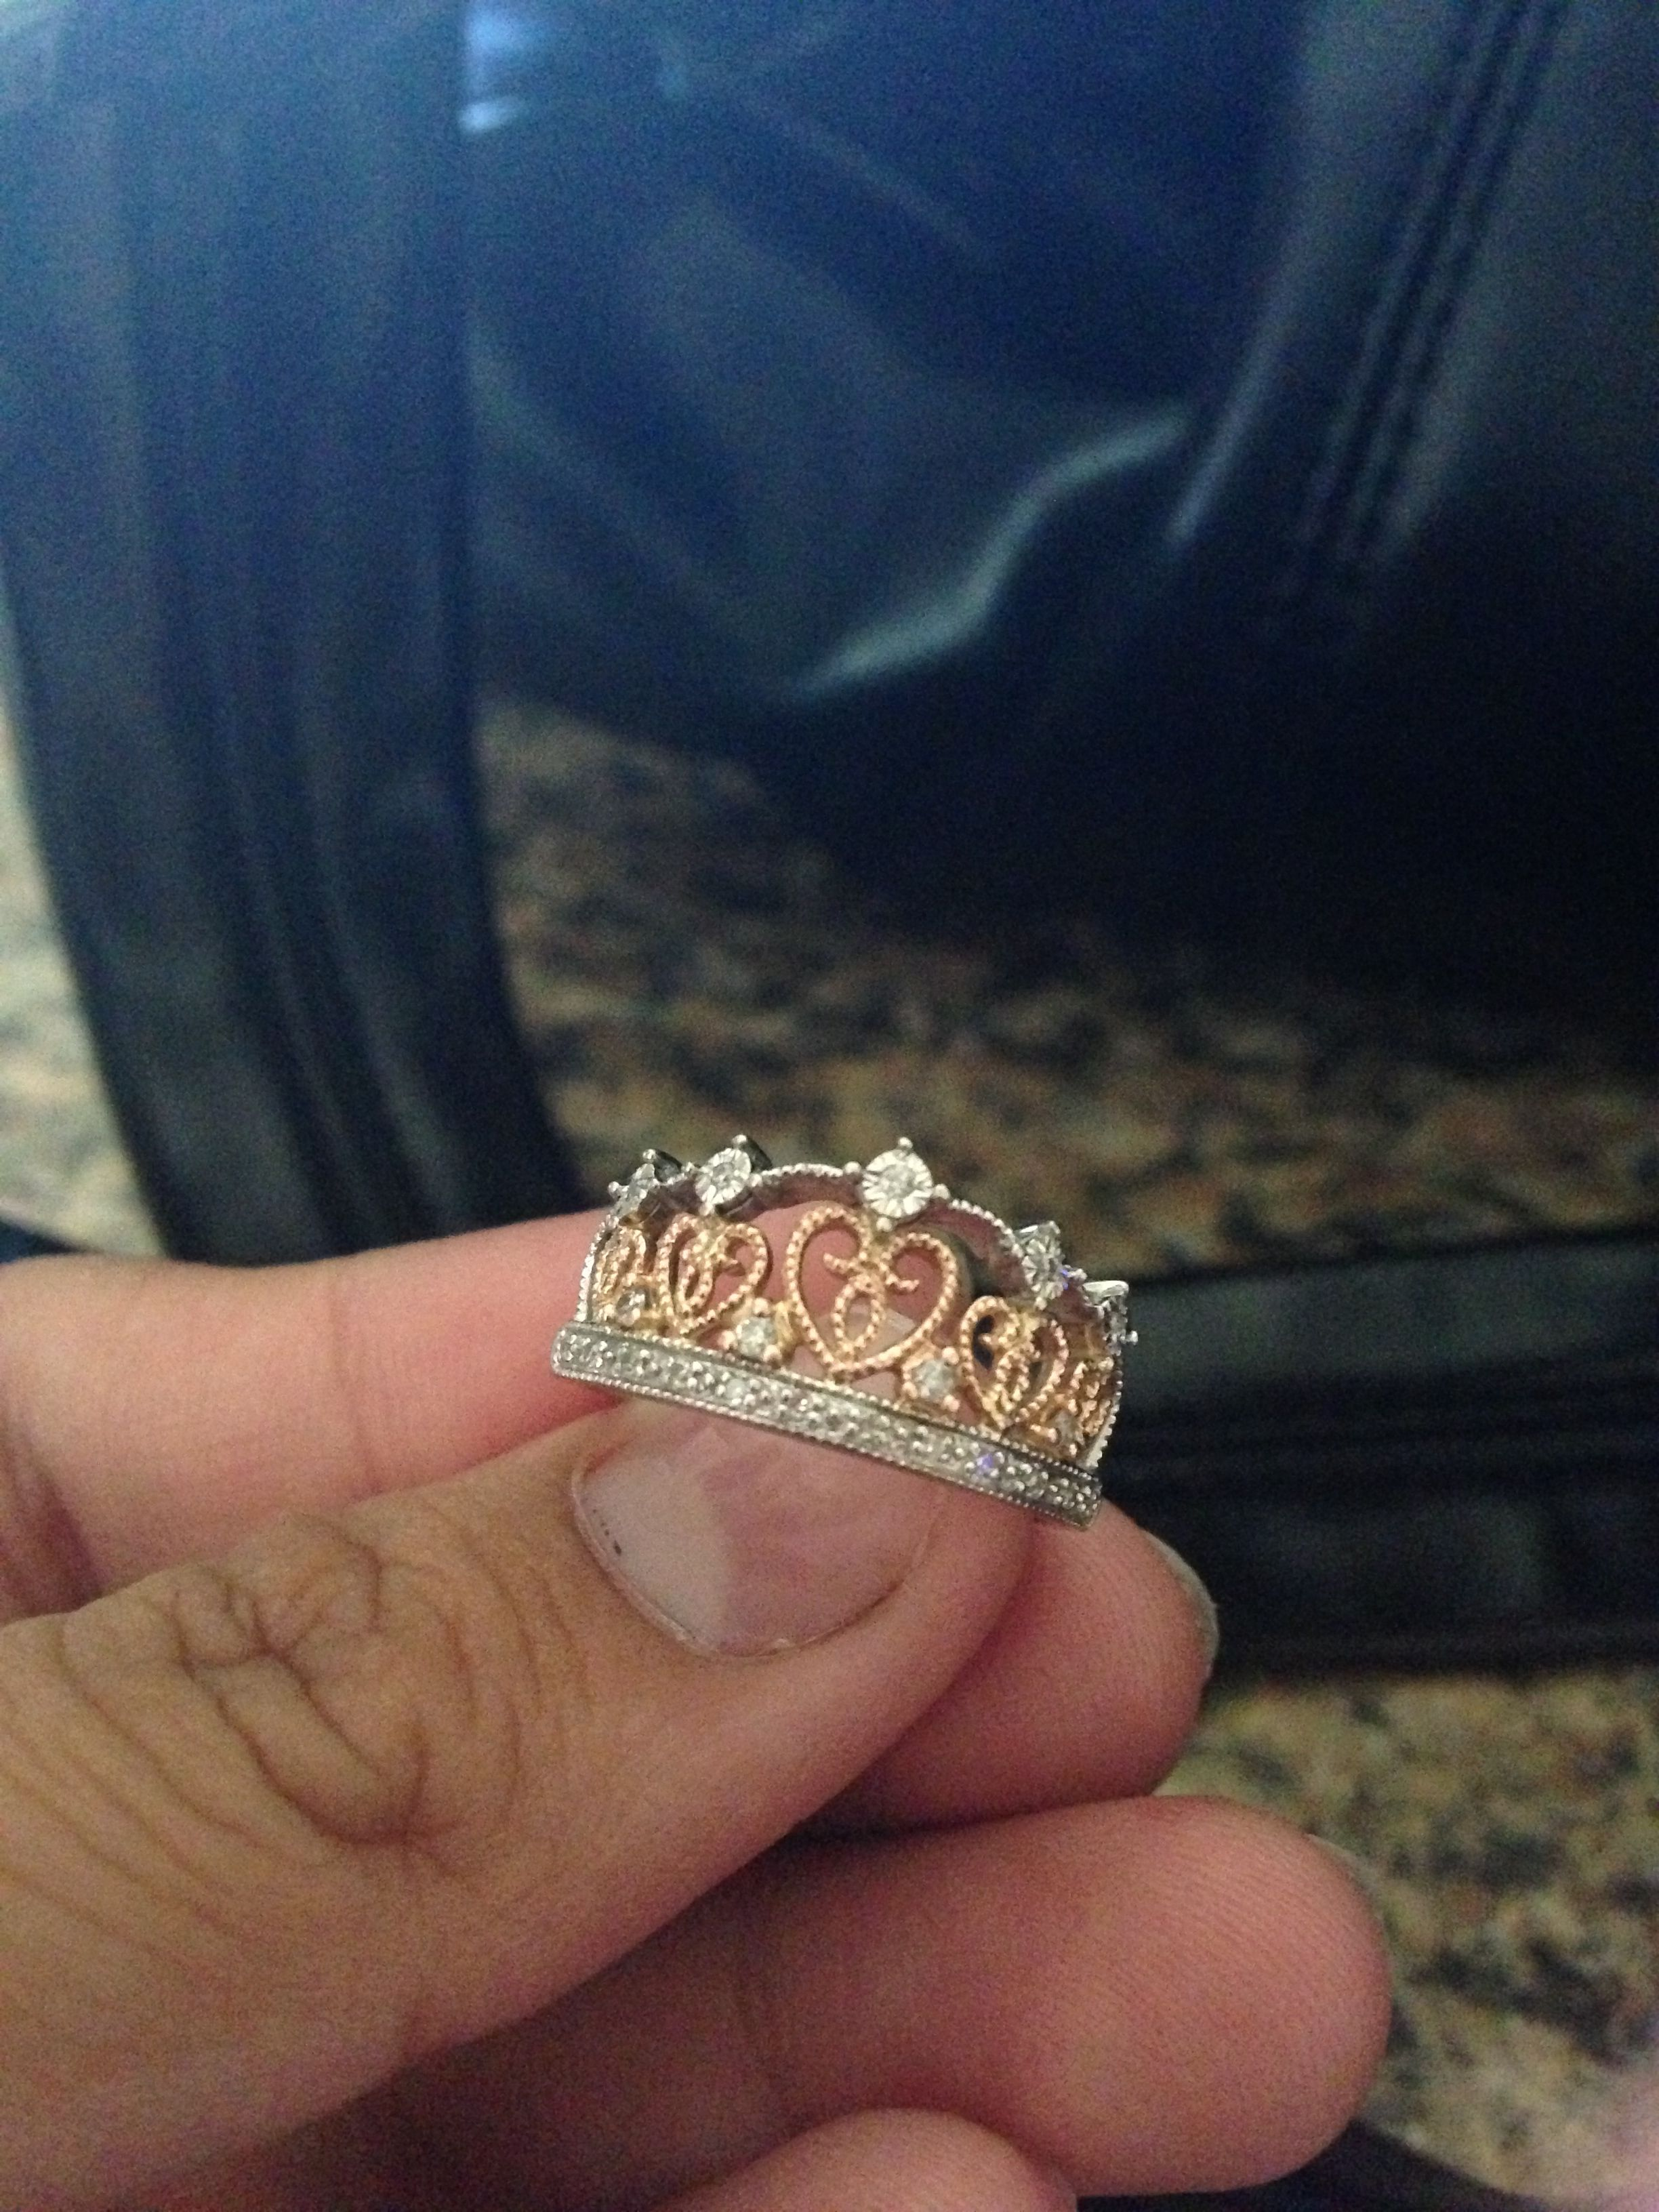 Princess crown ring Jewelry Pinterest